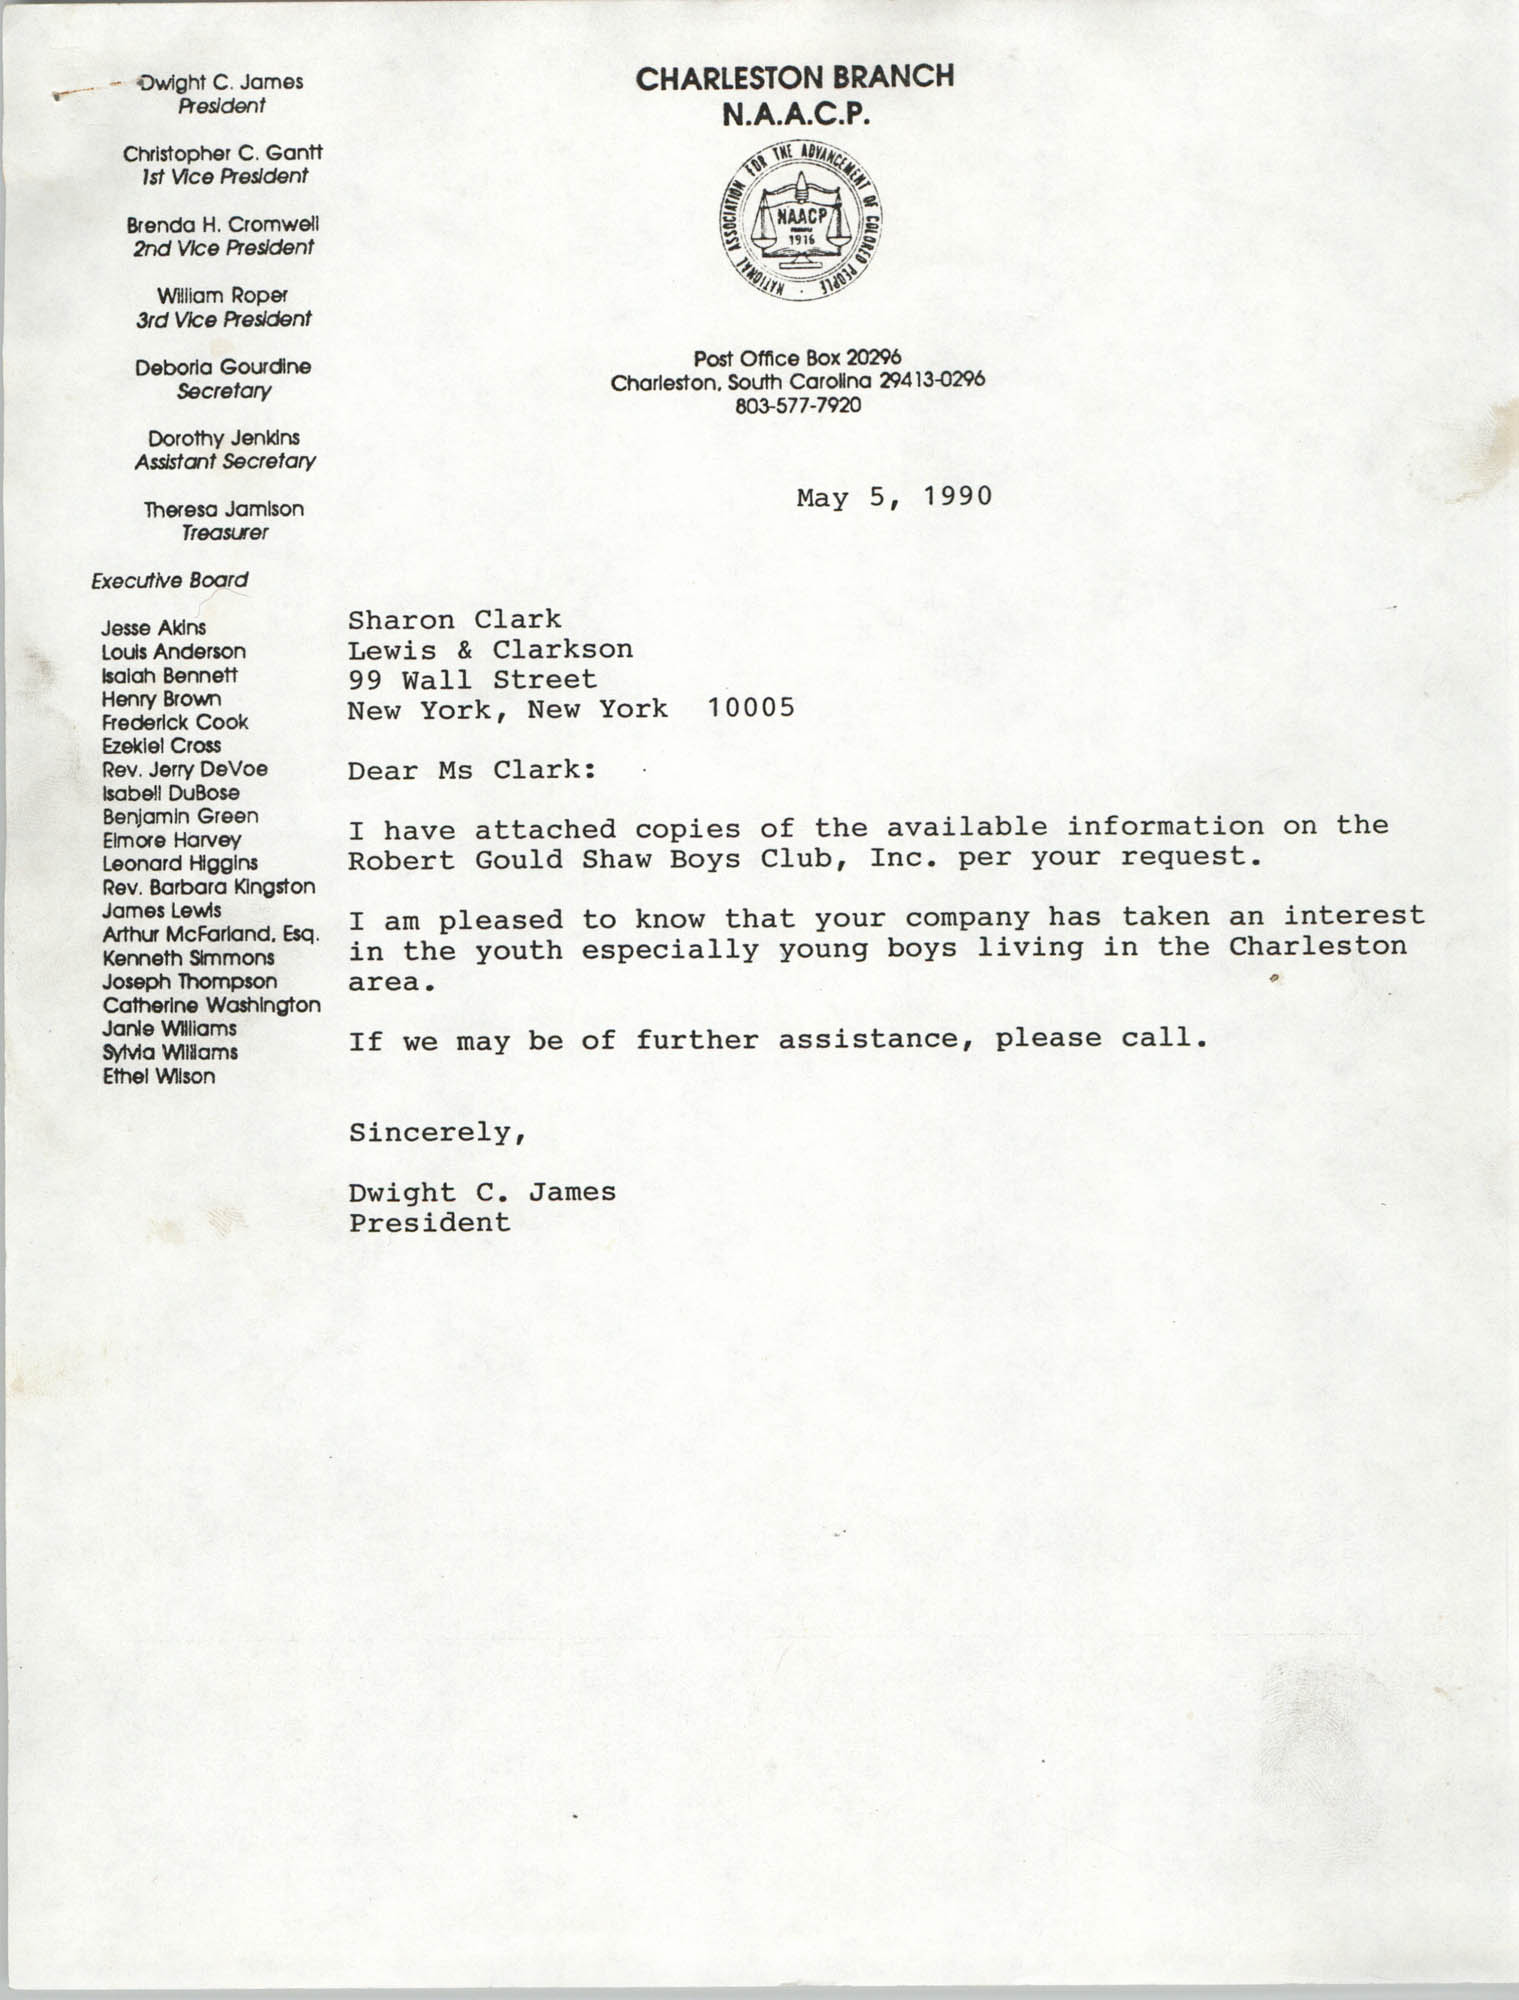 Letter from Dwight C. James to Sharon Clark, May 5, 1990